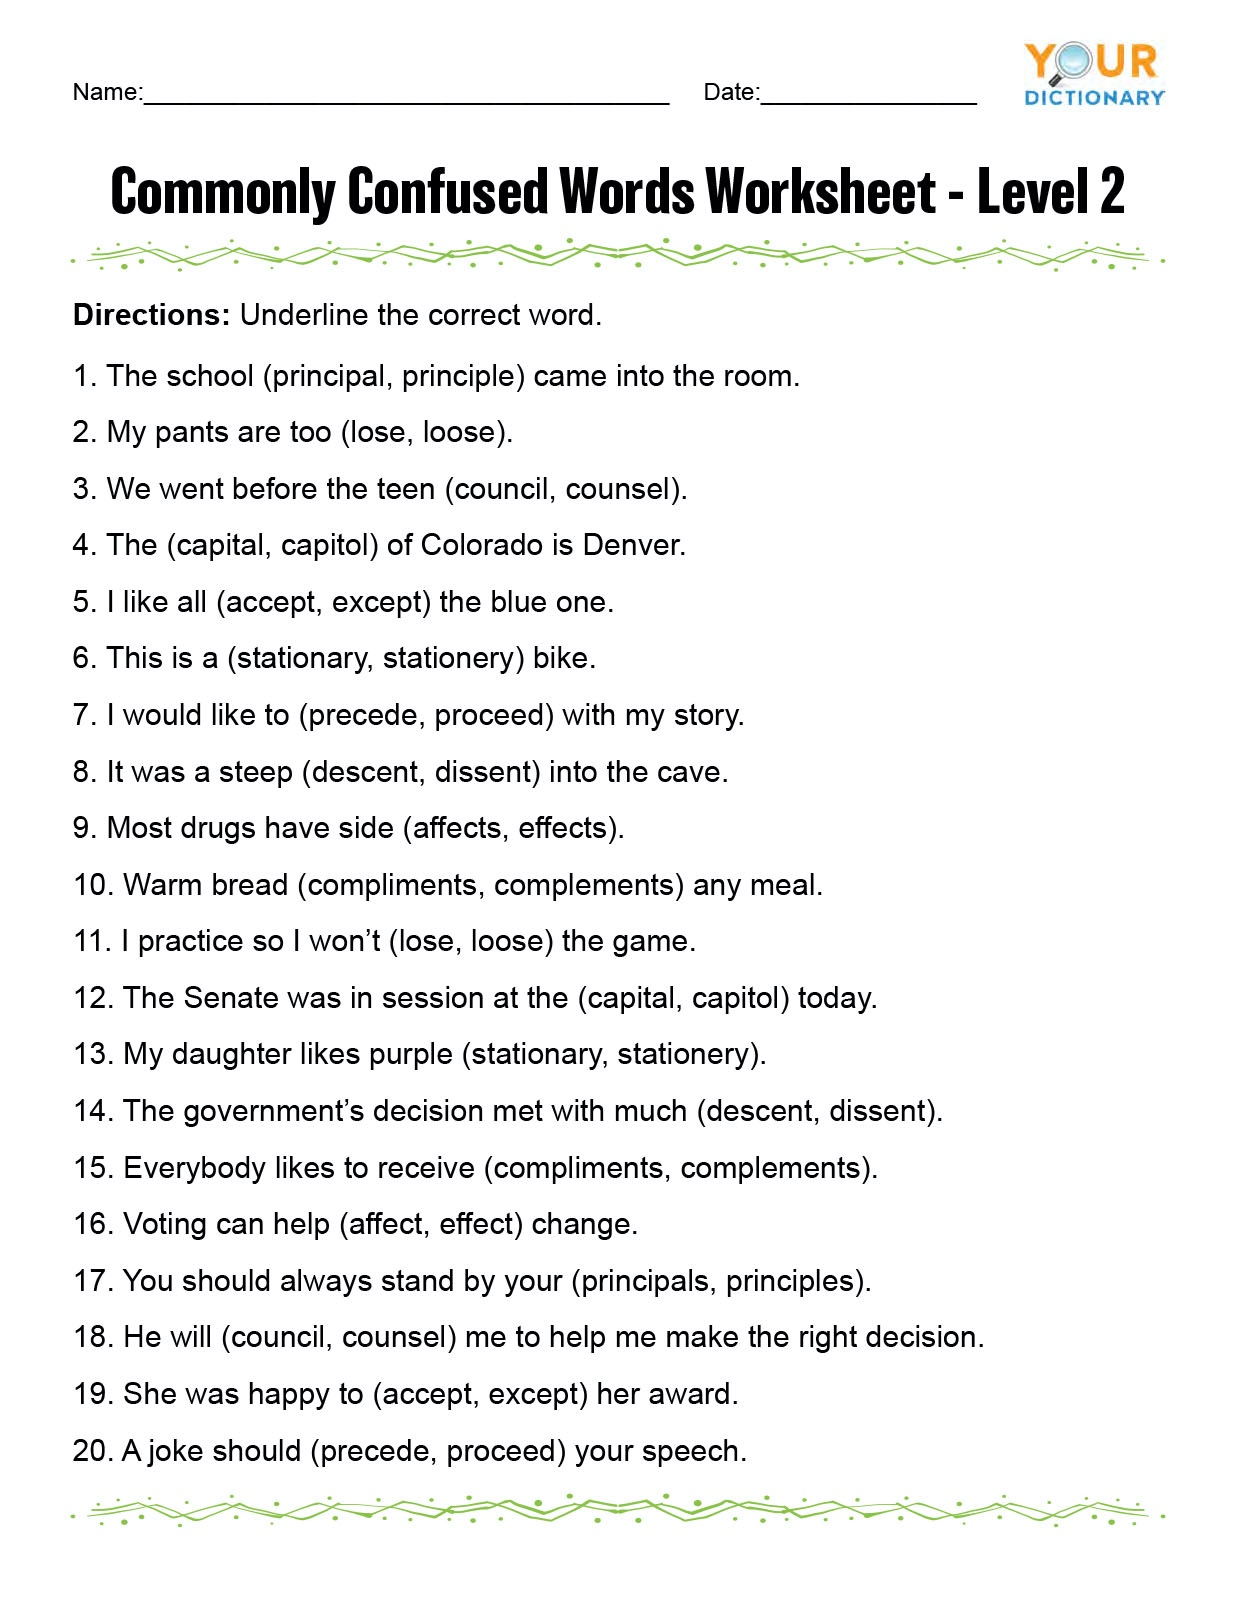 Commonly Confused Words Worksheet Level 2